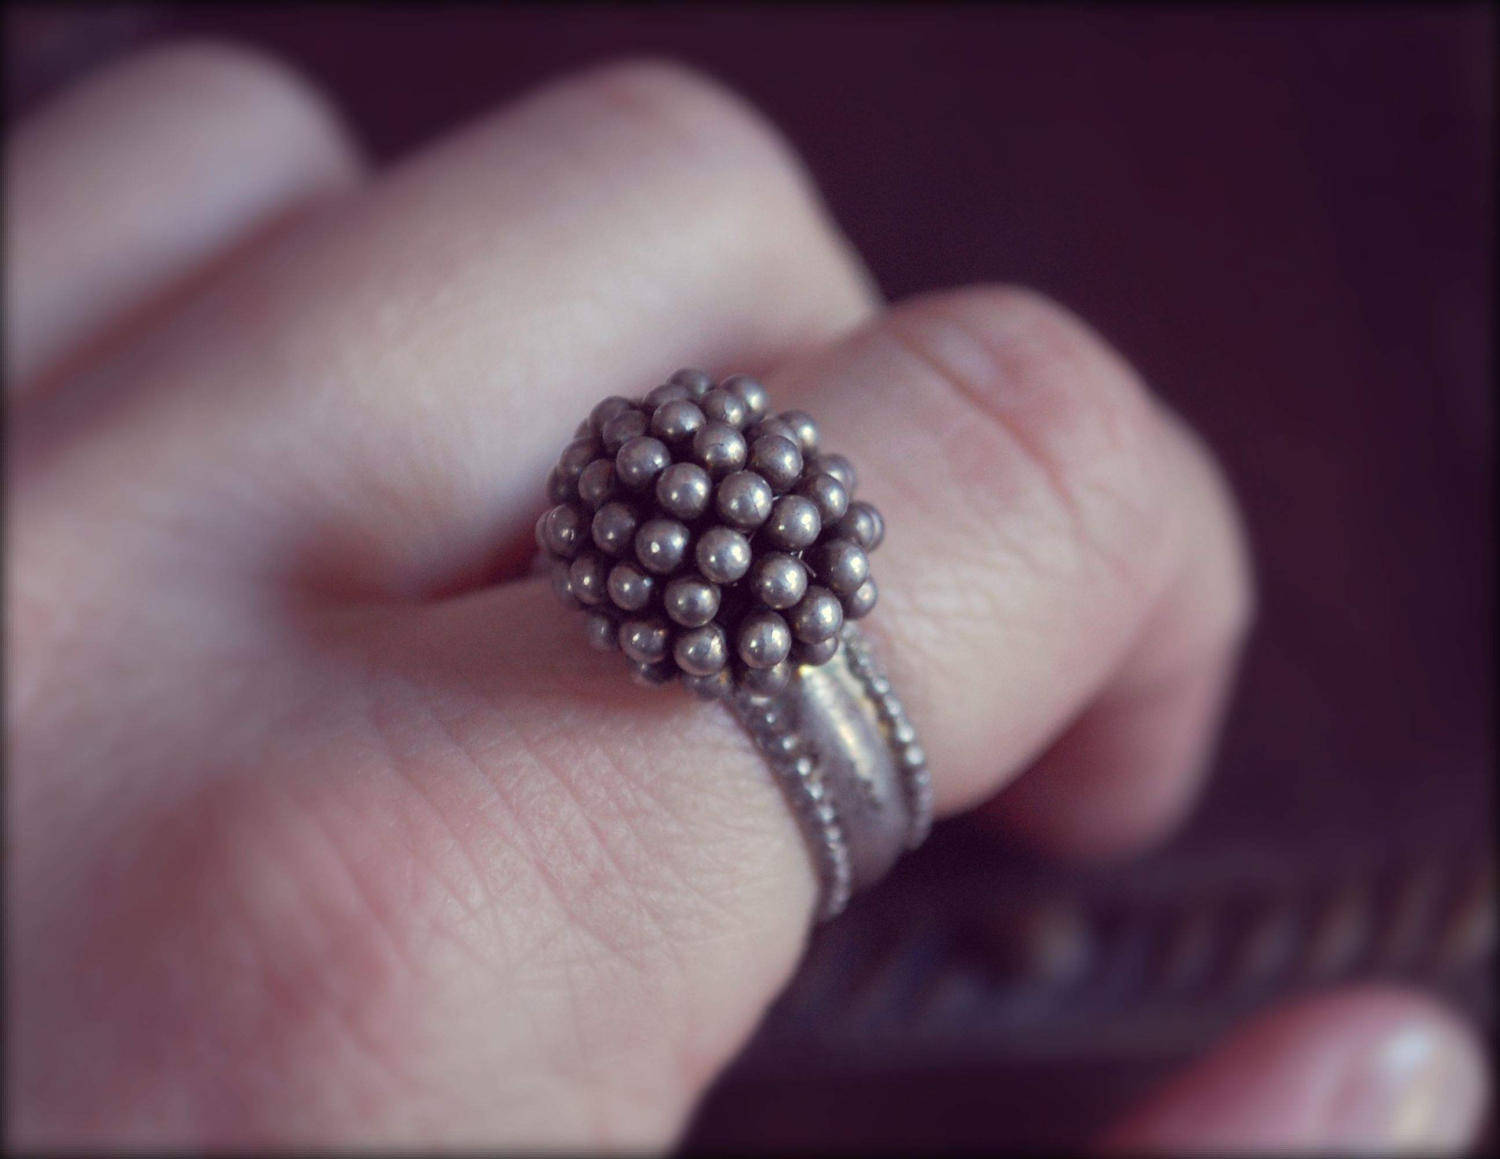 Tribal Rajasthan Silver Ring with Bells- Size 7 - Ethnic Tribal Indian Silver Ring - Rajasthani Silver Ring